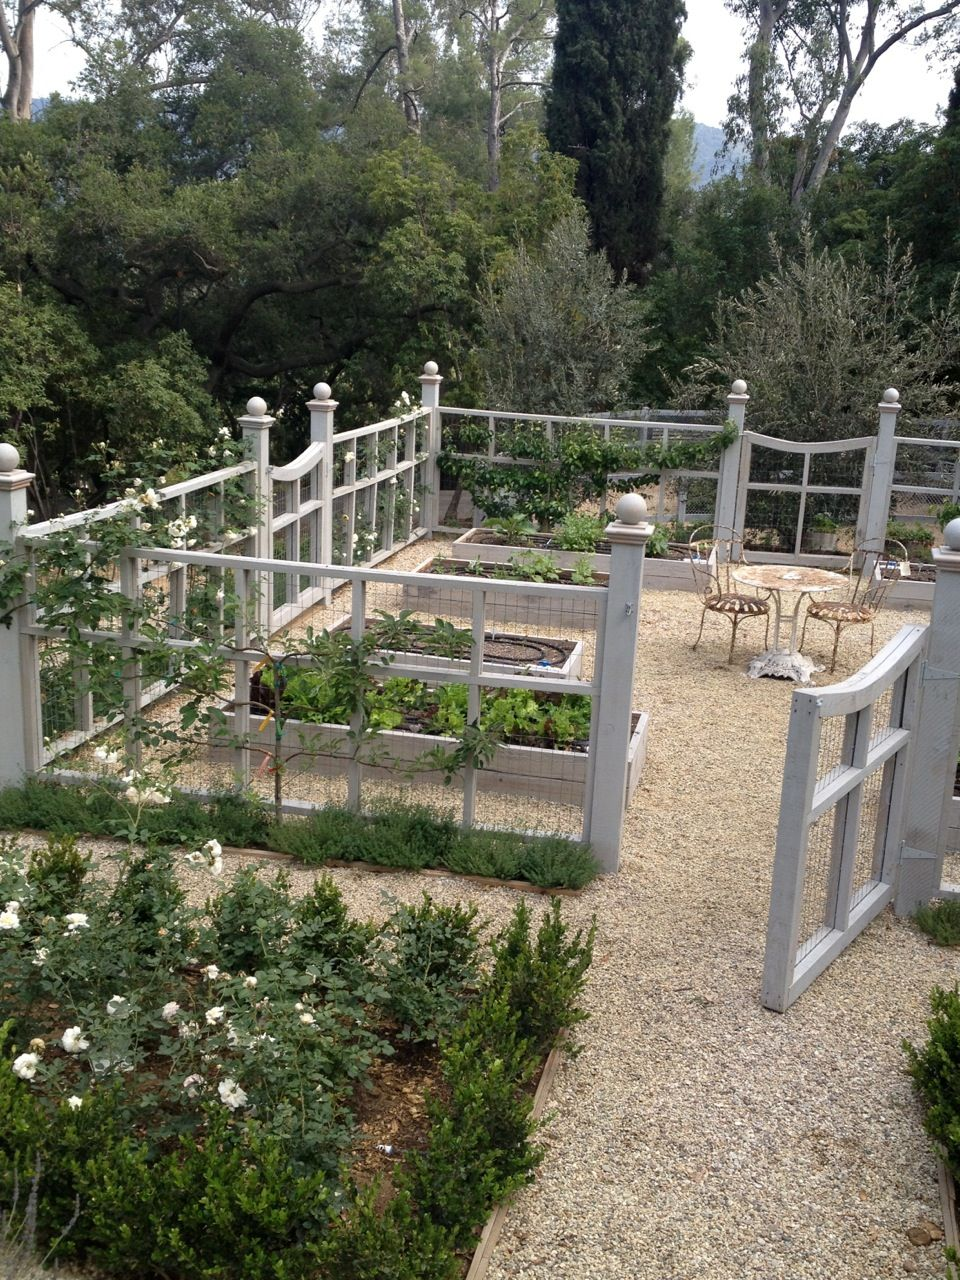 Giannetti Home: Our Clients' Beautiful Garden...